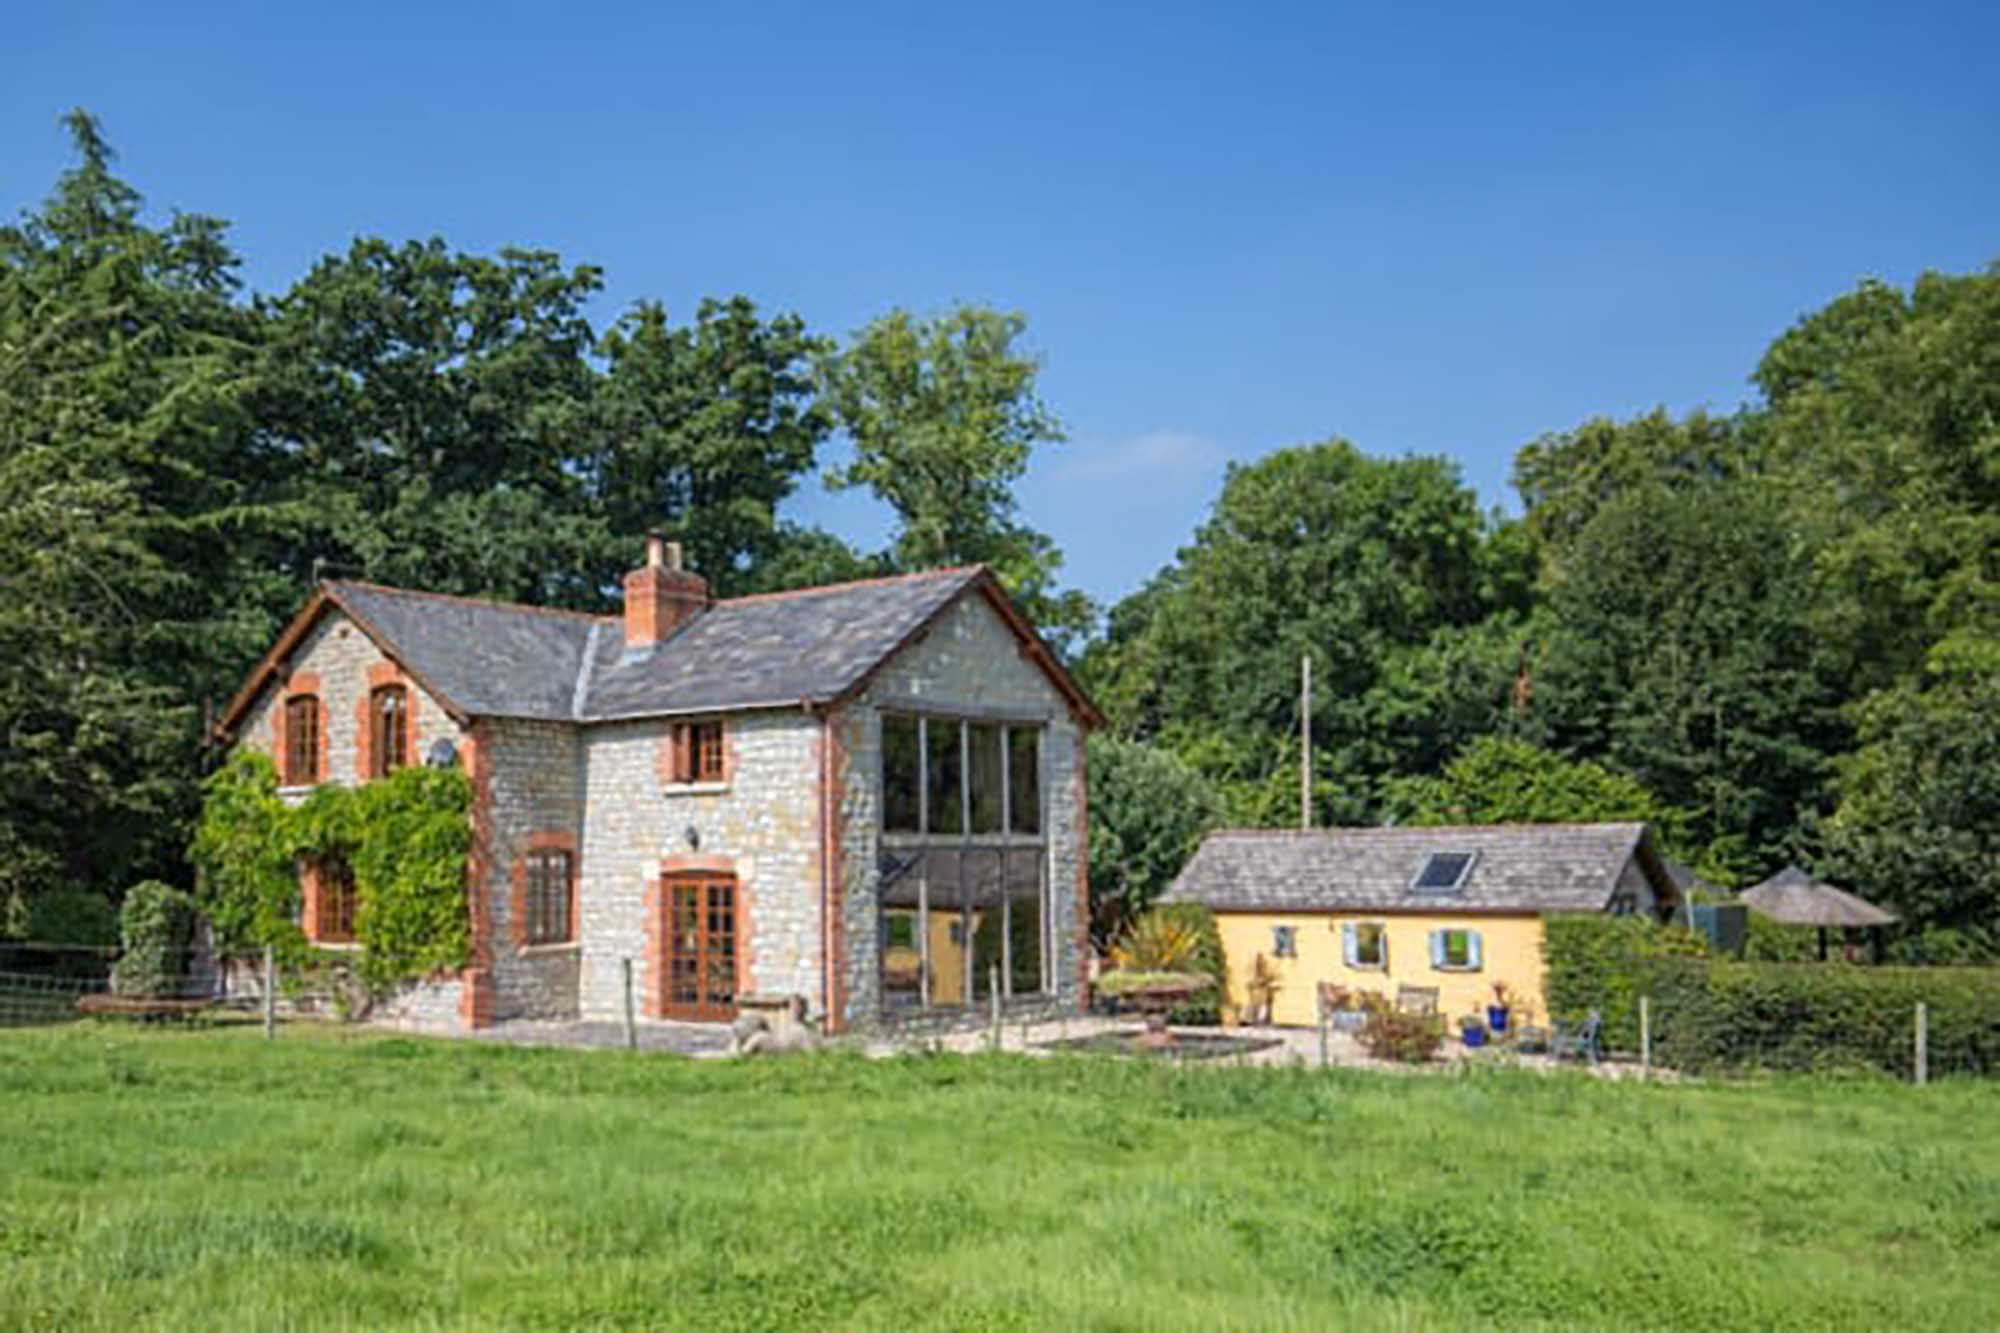 Idyllic location-three bedroom house & one bed cottage in secluded location at Pylle near Pilton